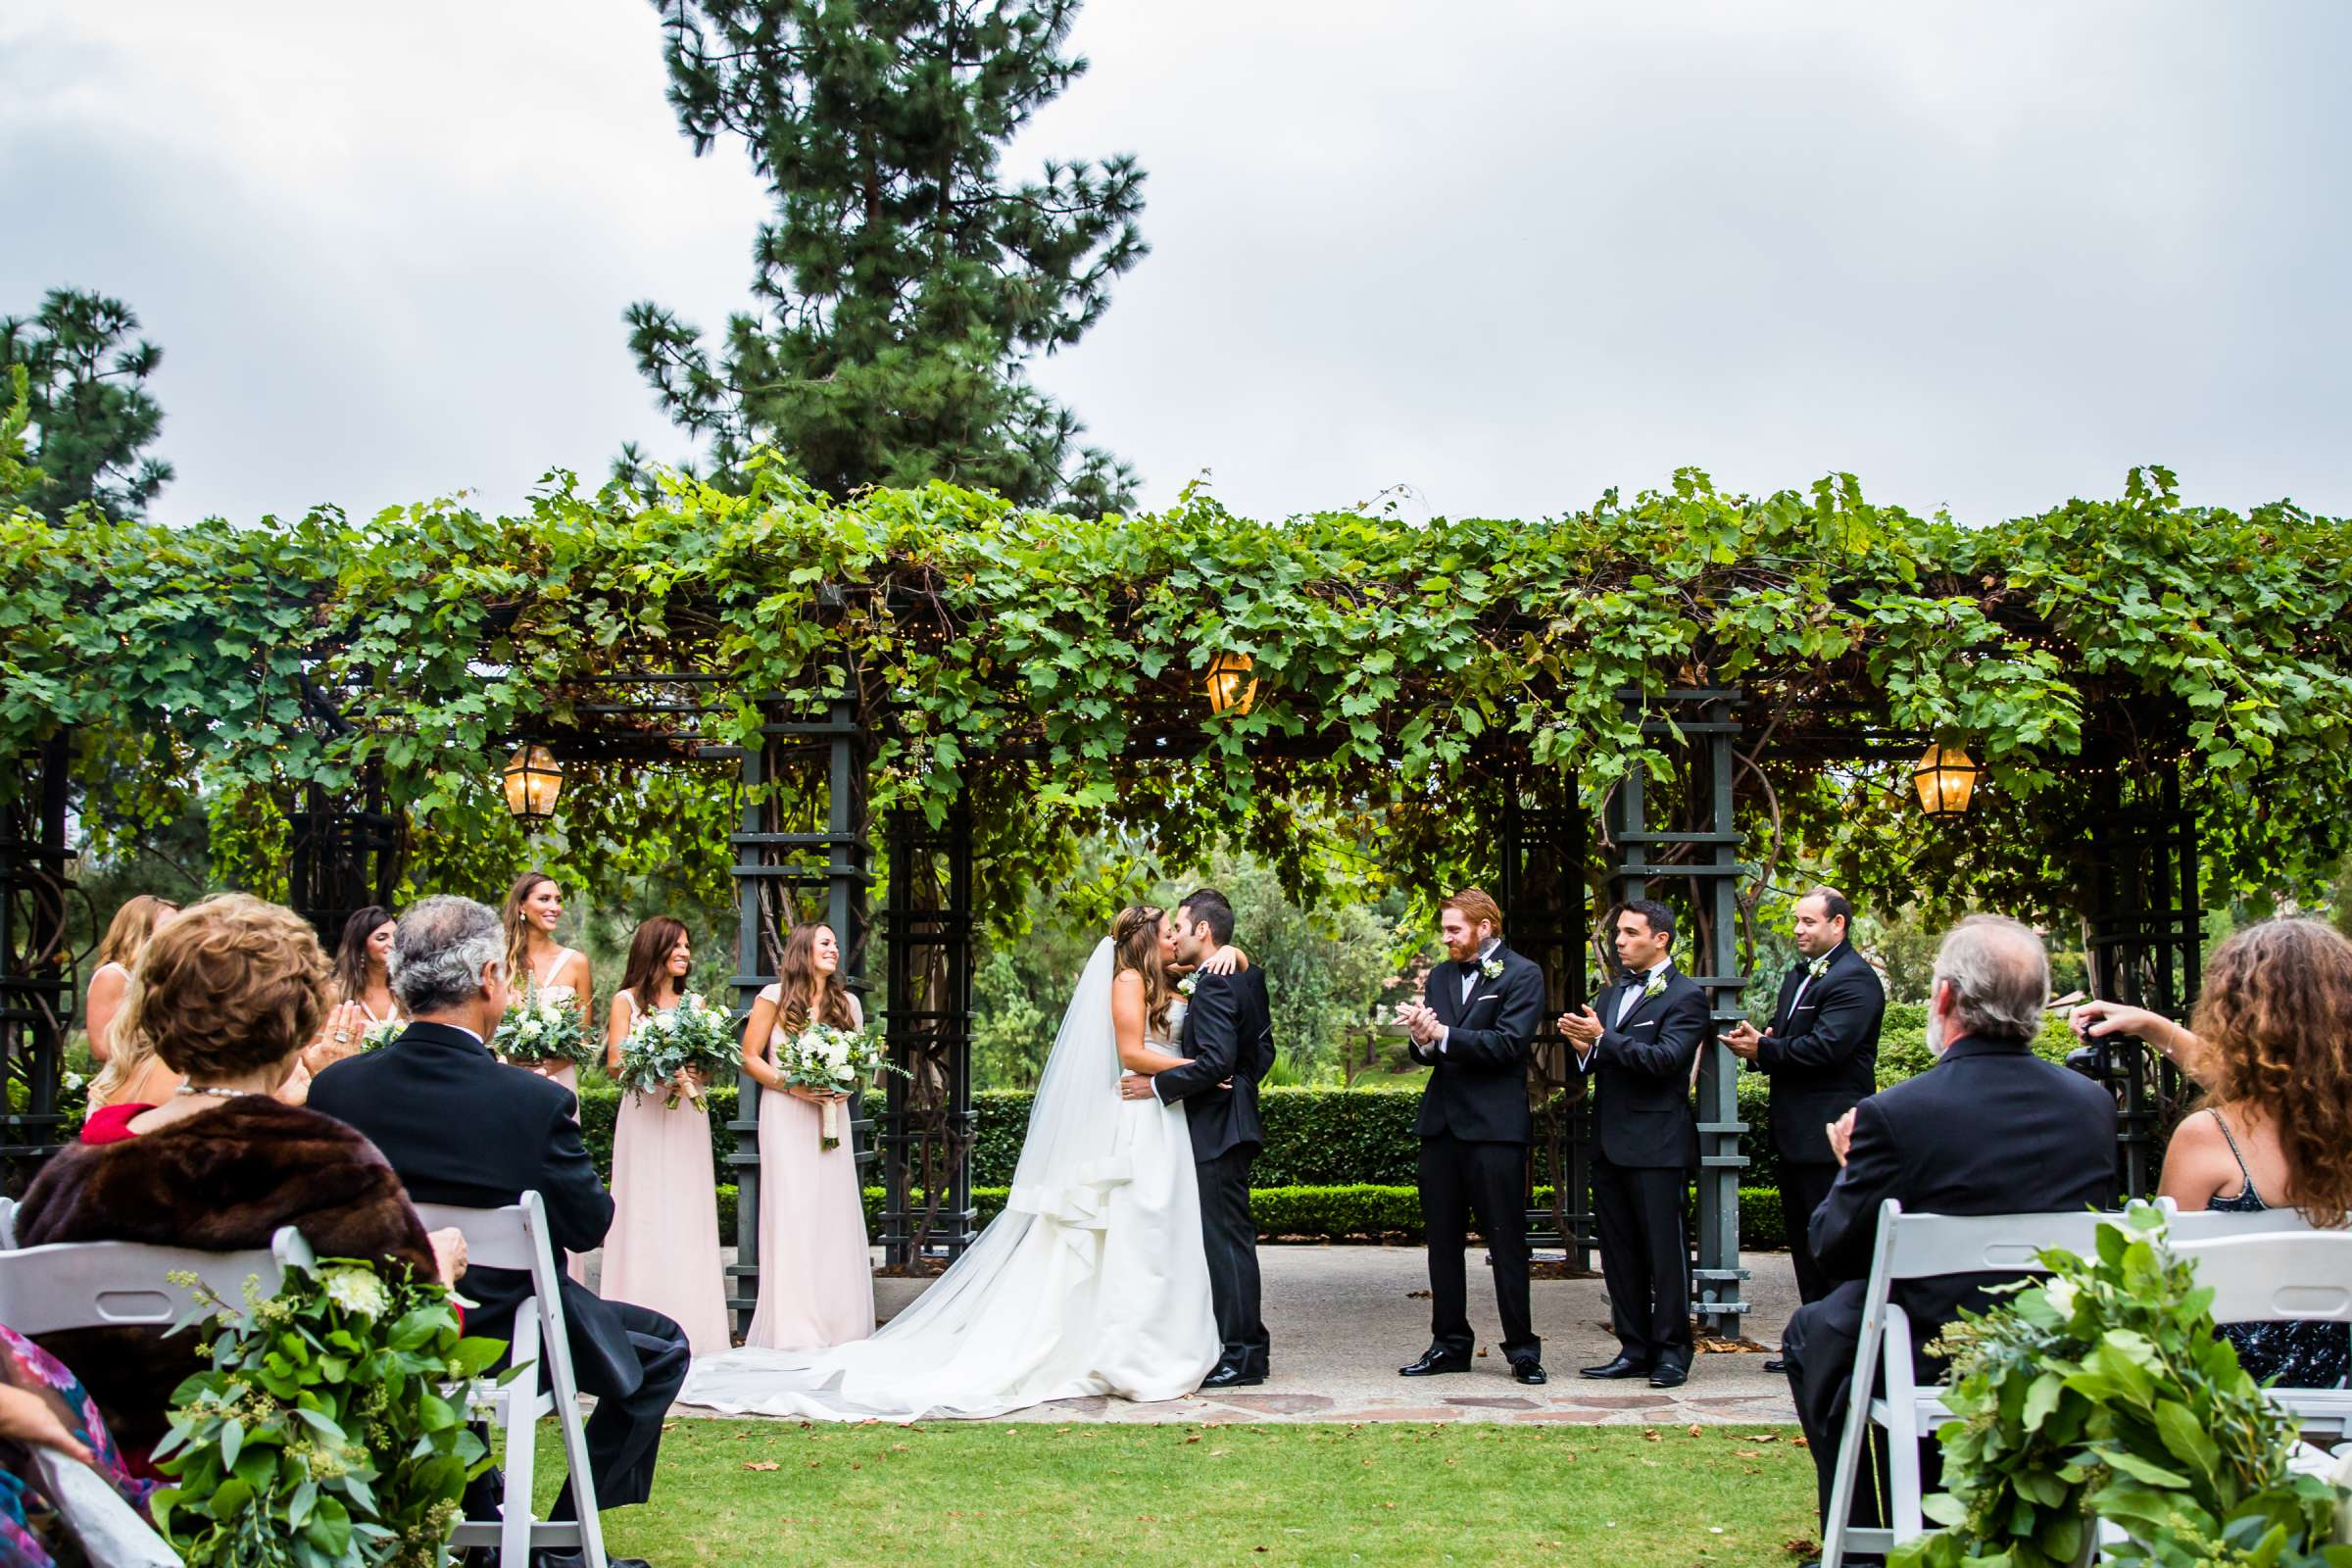 Rancho Bernardo Inn Wedding coordinated by Très Chic Events, Stefania and Nicholas Wedding Photo #49 by True Photography